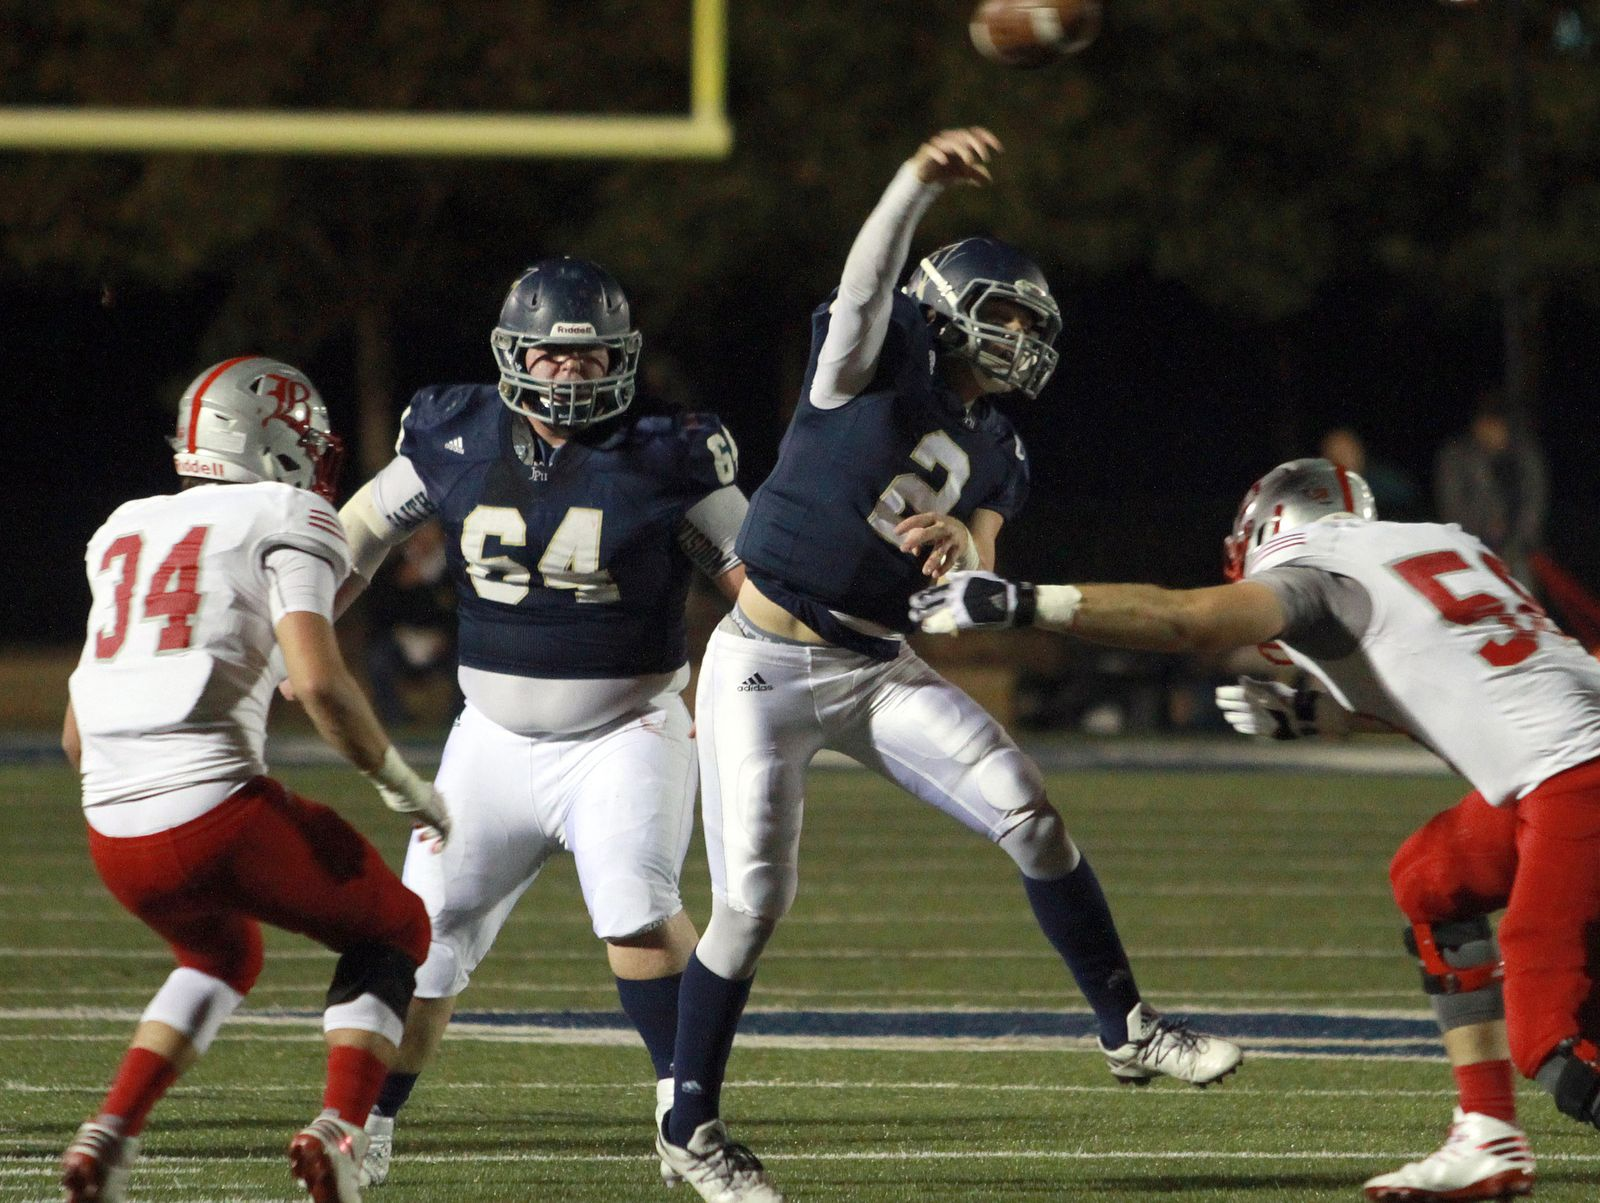 Pope John Paul II QB Ben Brooks gets the pass of despite the rush of Baylor's Walker Culver in Hendersonville, TN on Fri. Nov. 4, 2016. Photo by Dave Cardaciotto